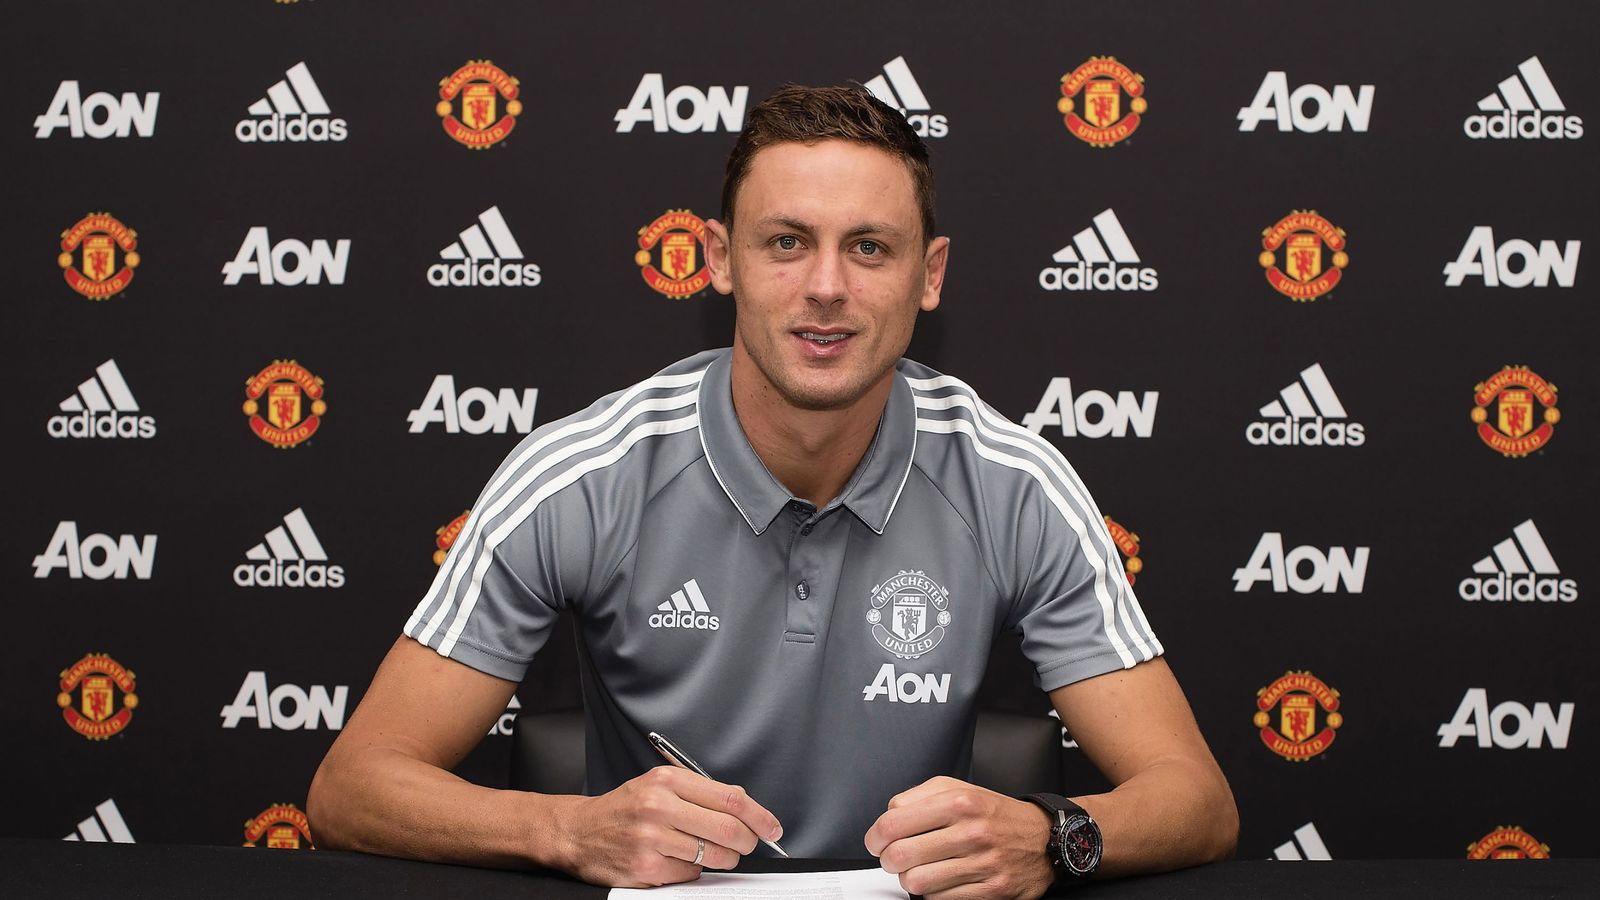 Manchester United sign Nemanja Matic from Chelsea